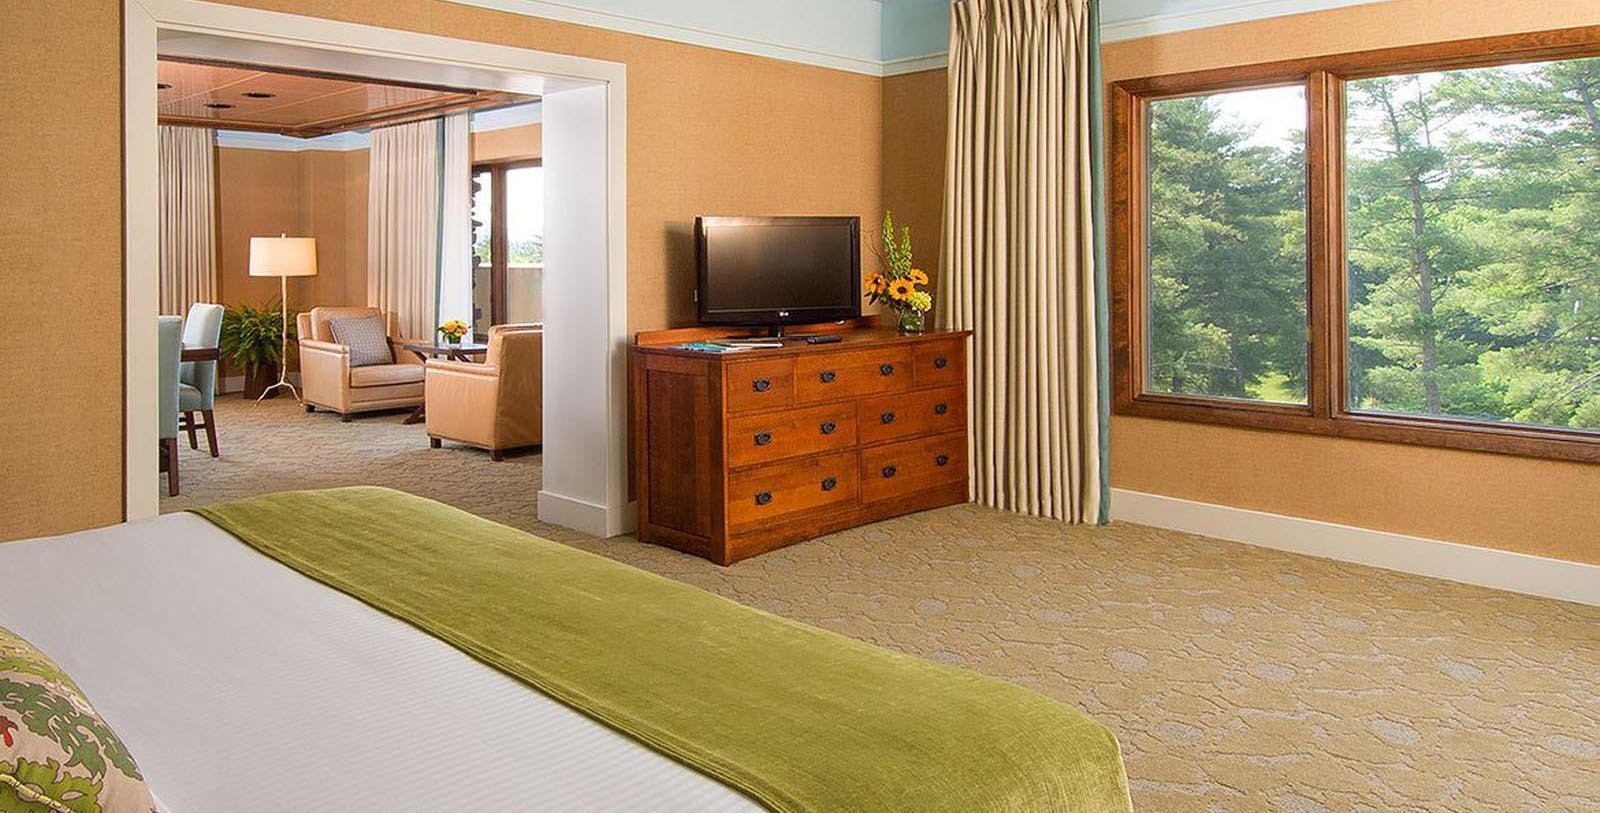 Image of Guestroom at The Omni Grove Park Inn, 1913, Member of Historic Hotels of America, in Asheville, North Carolina, Accommodations